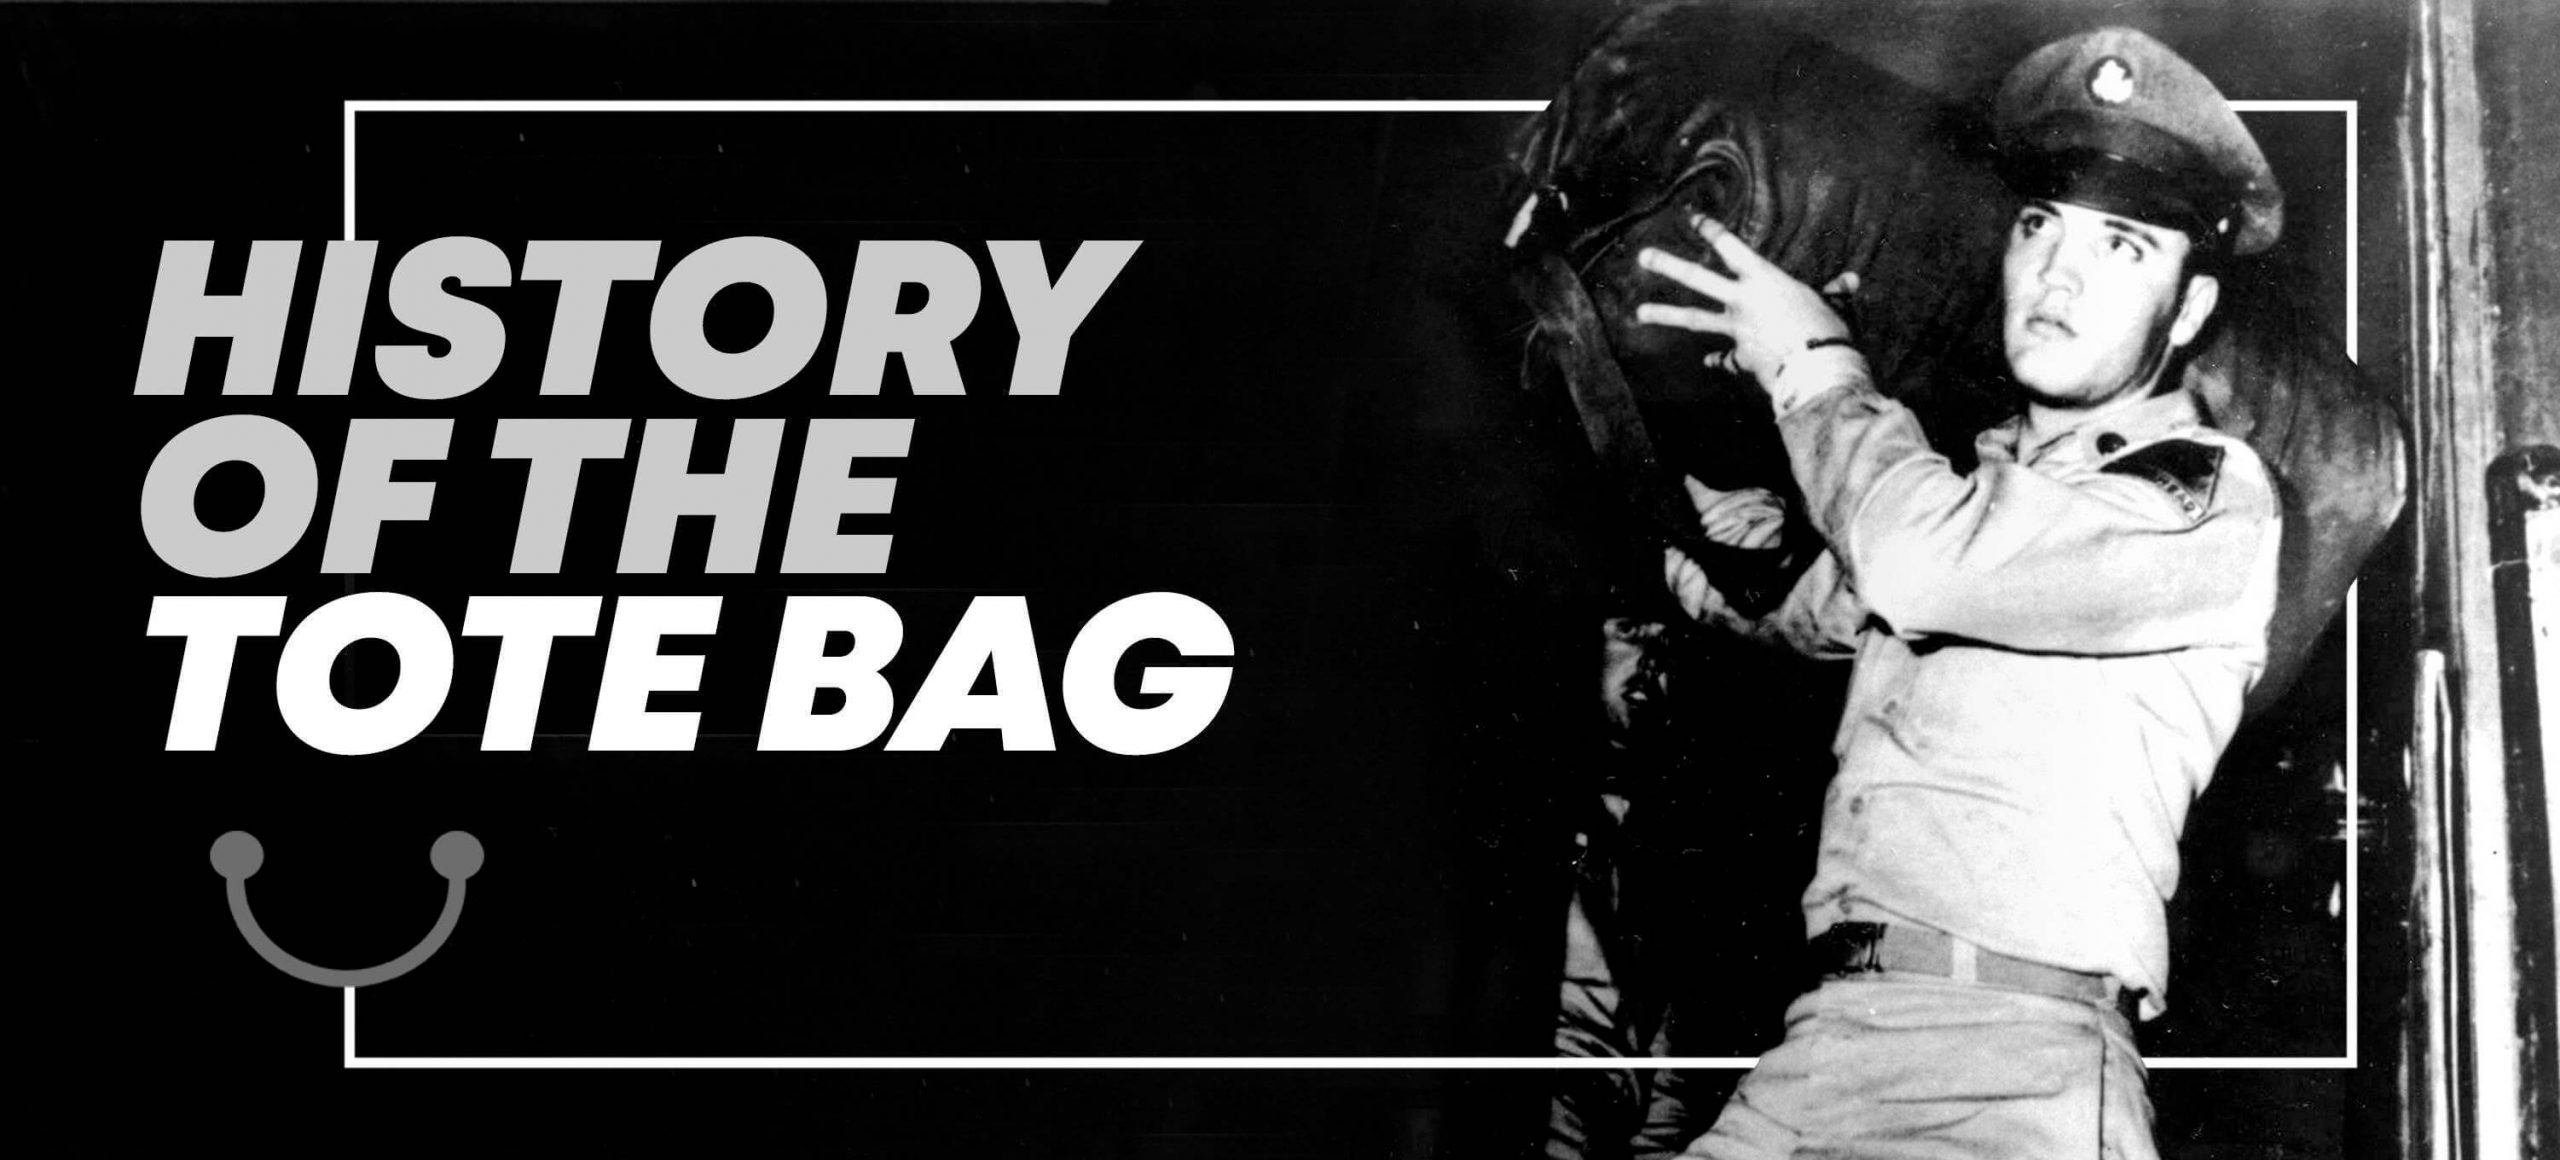 WHAT IS THE HISTORY OF TOTE BAGS